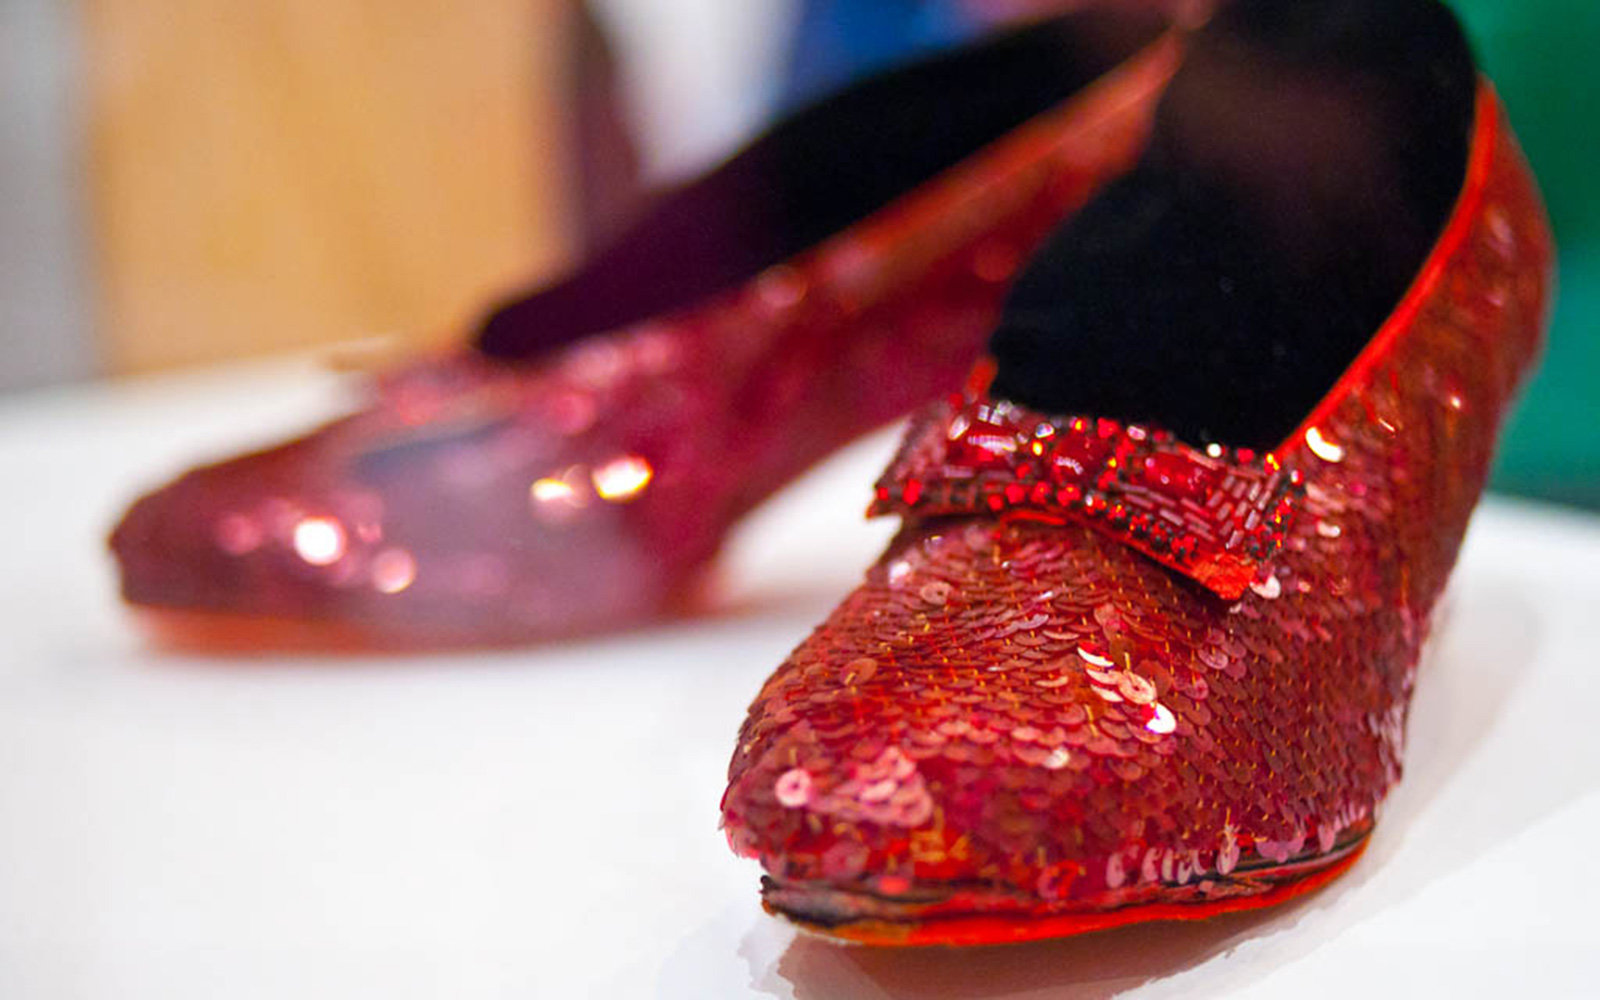 National Museum of American History Red Ruby Slippers